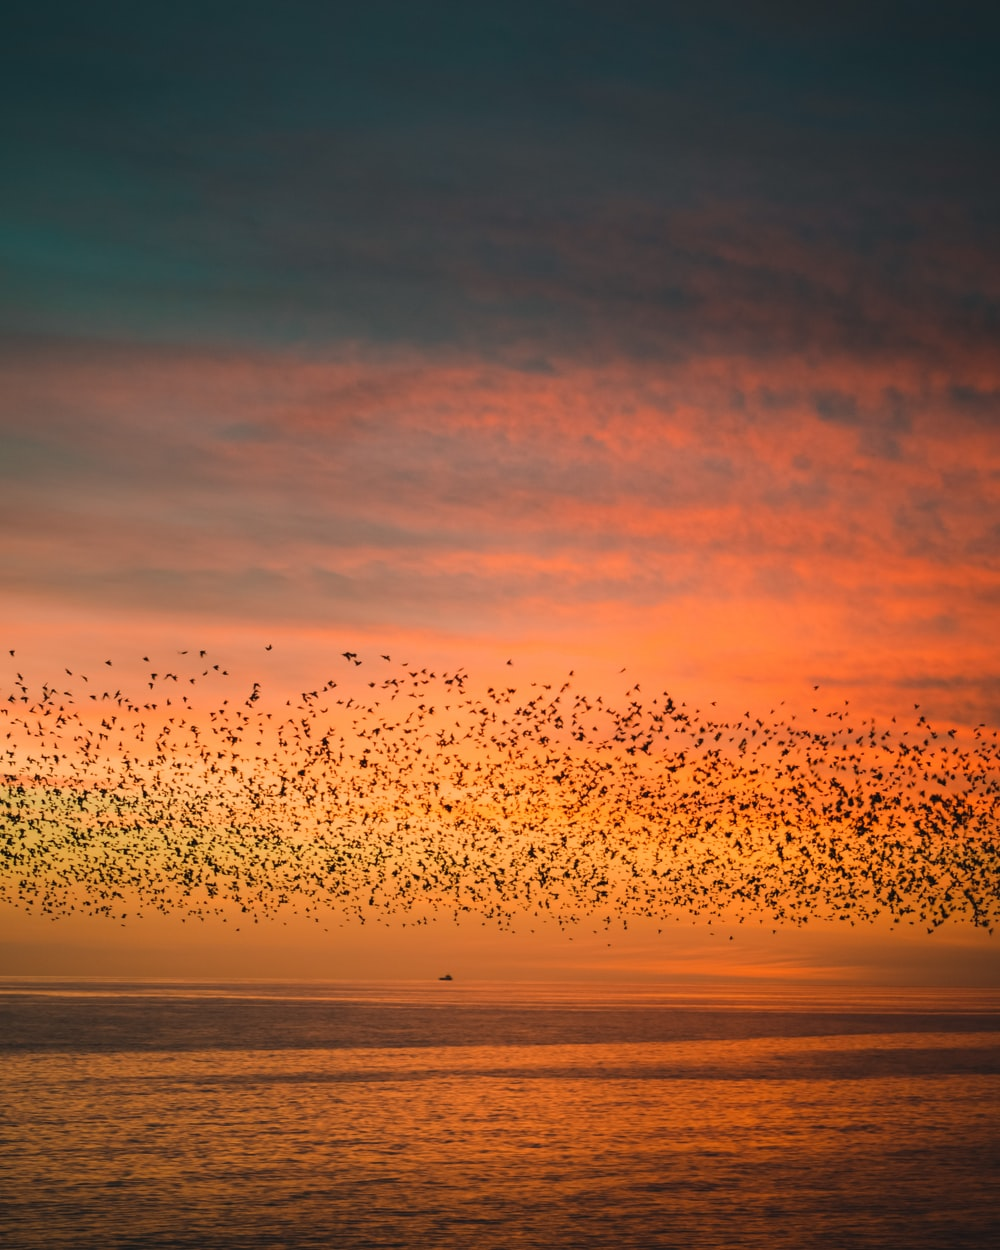 flock of birds flying over the sea during sunset